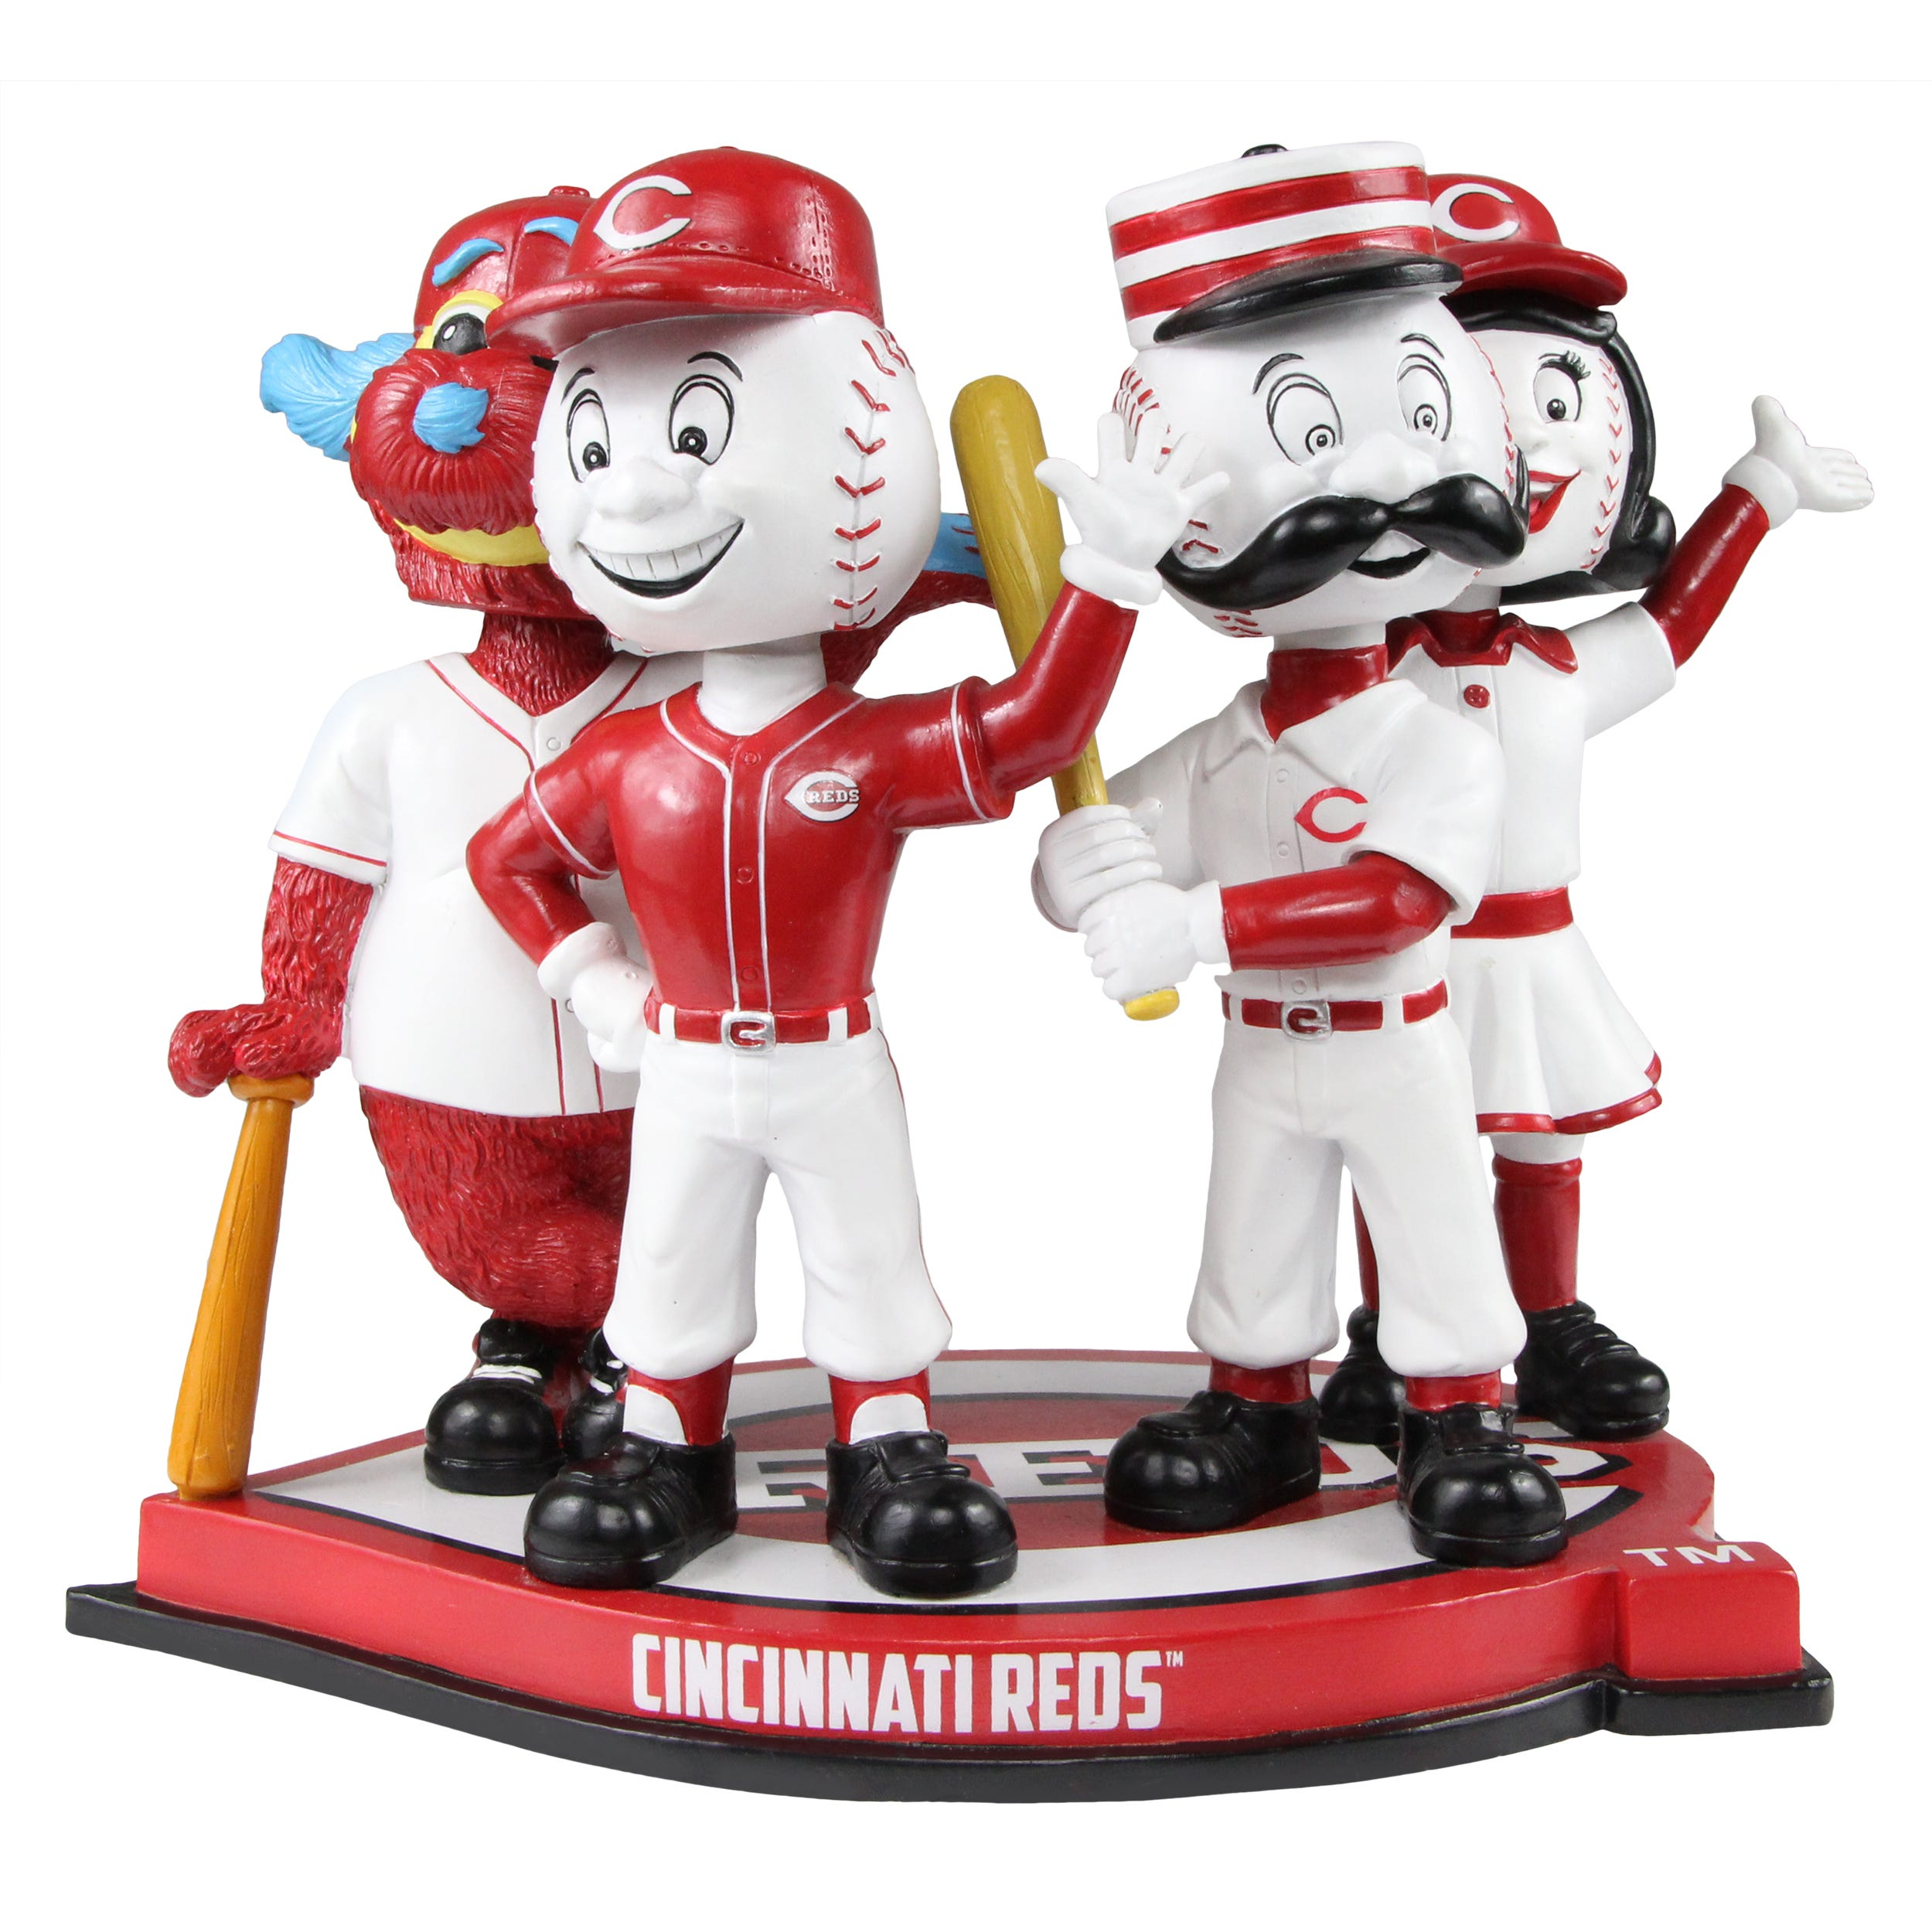 Quadruple bobblehead celebrates 150 years of Reds History